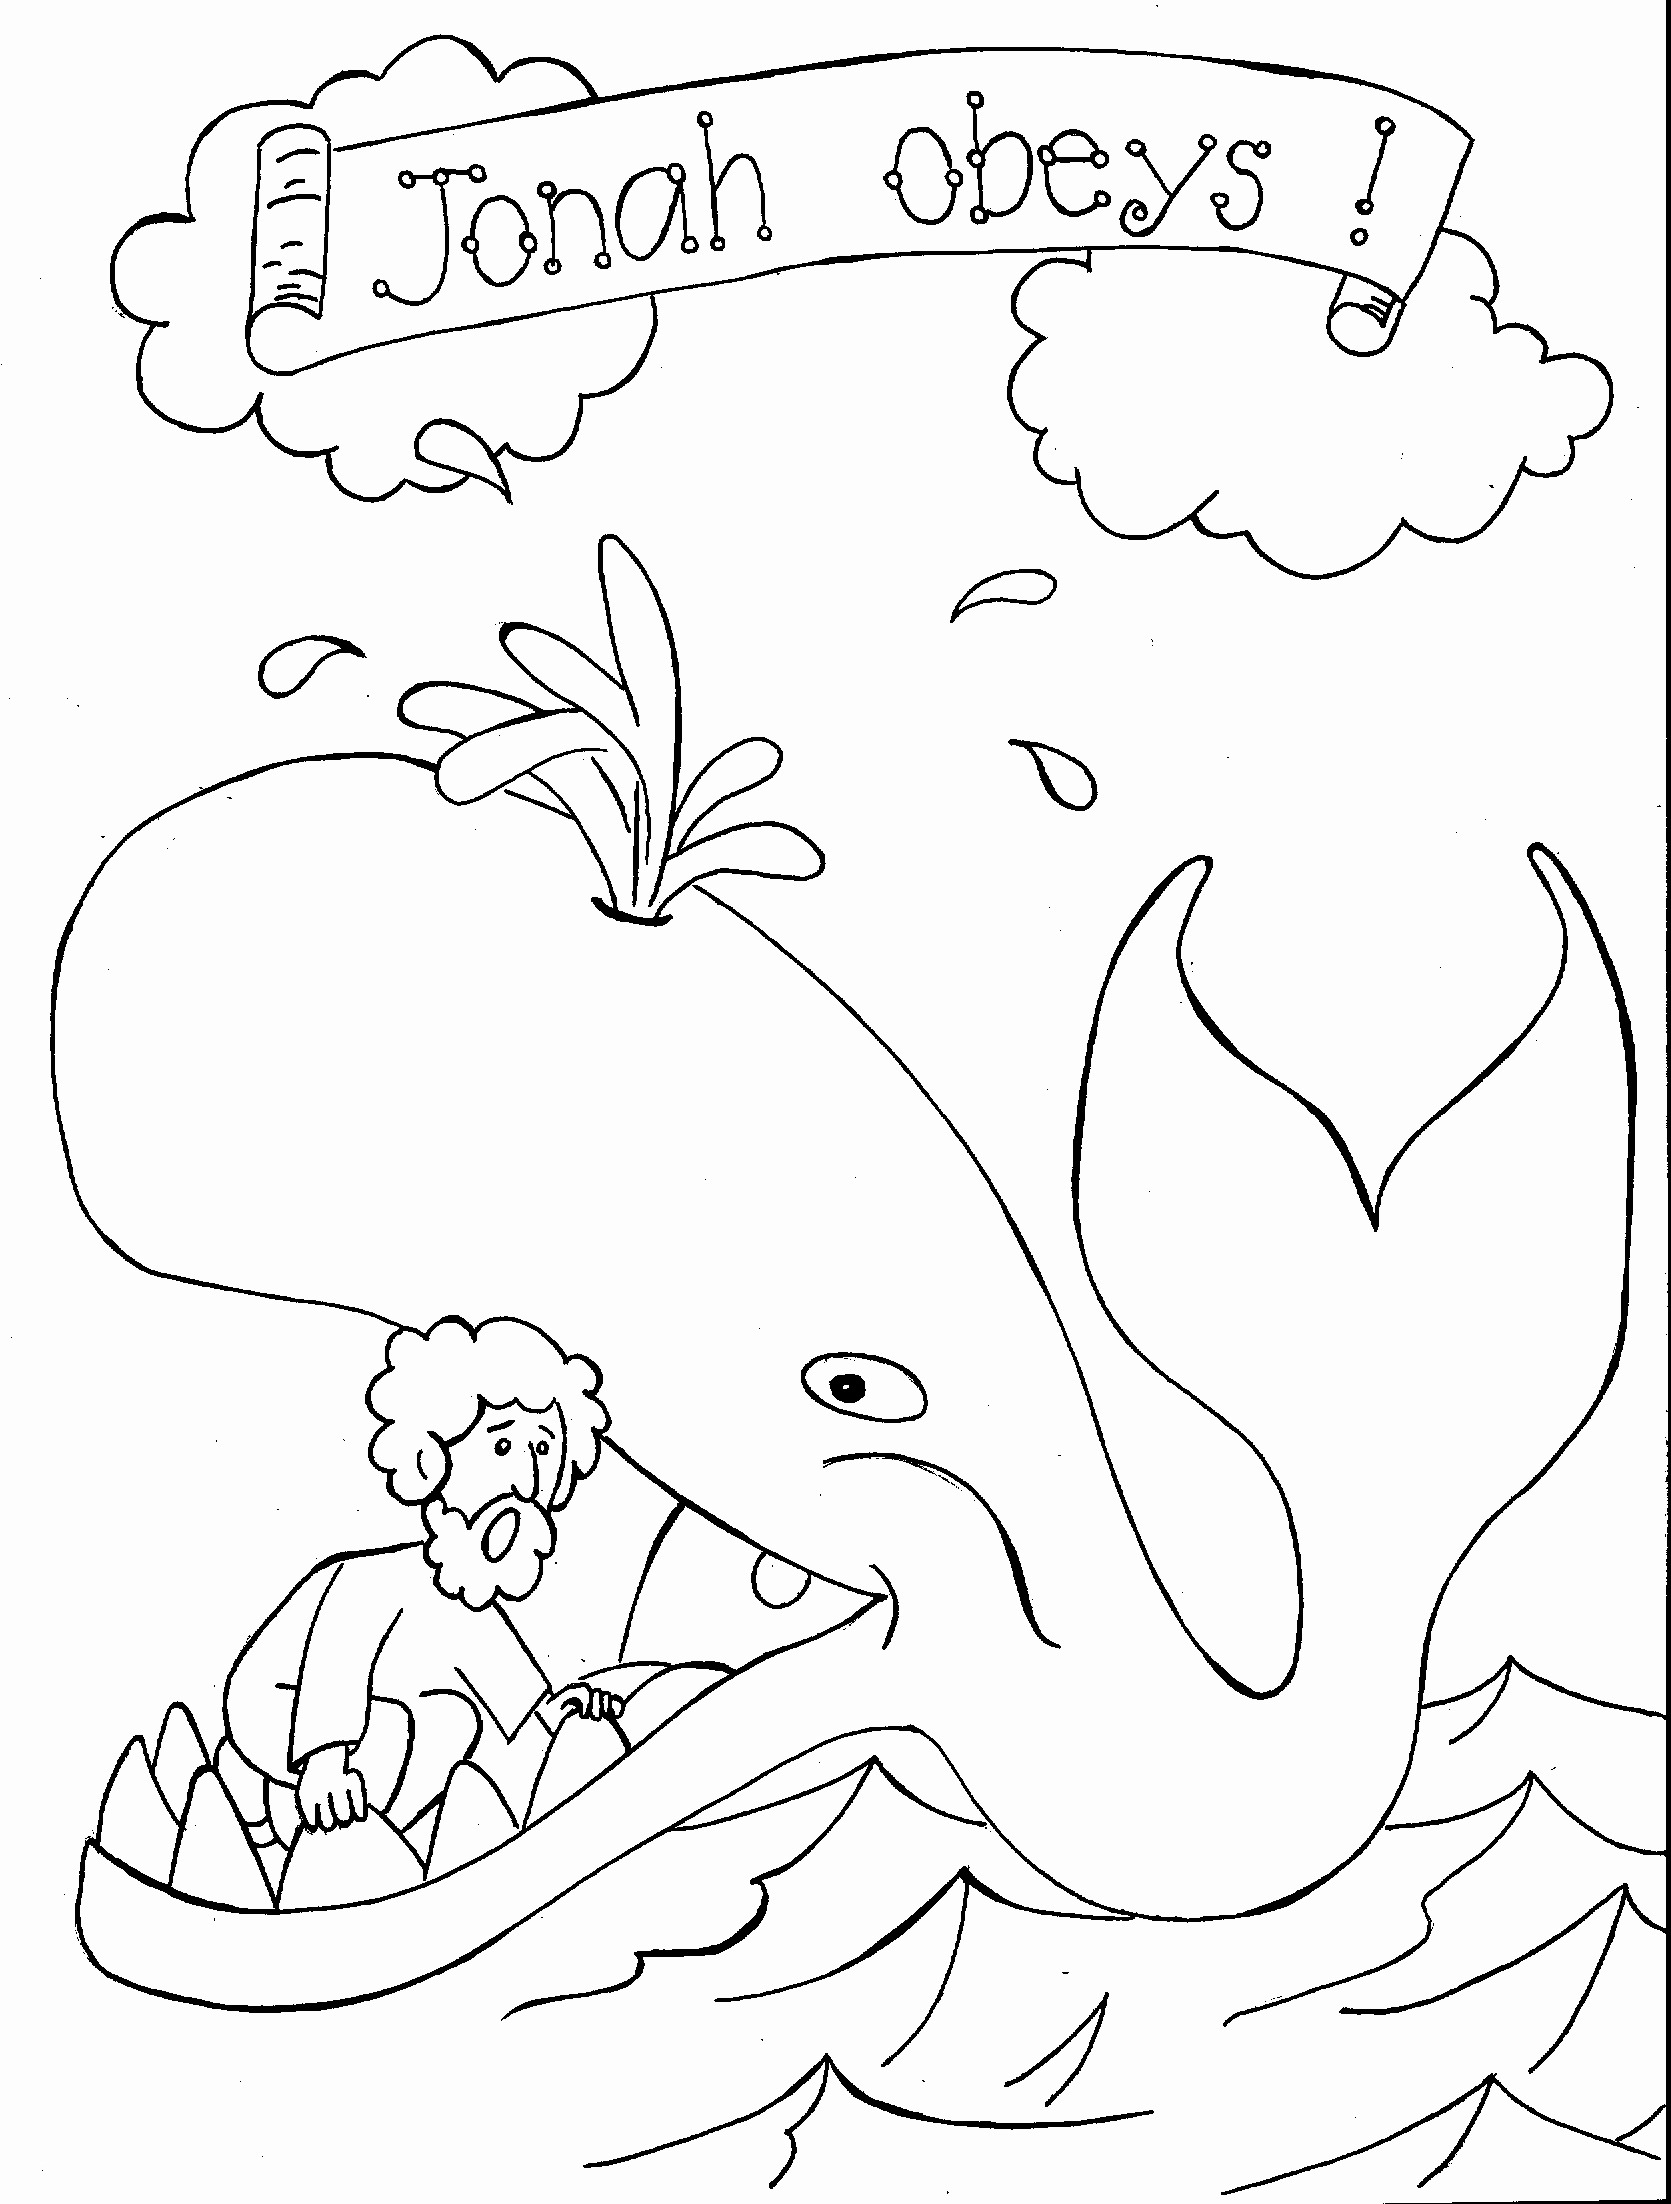 Bible Story Coloring Pages Gospel Light  Printable 8l - To print for your project